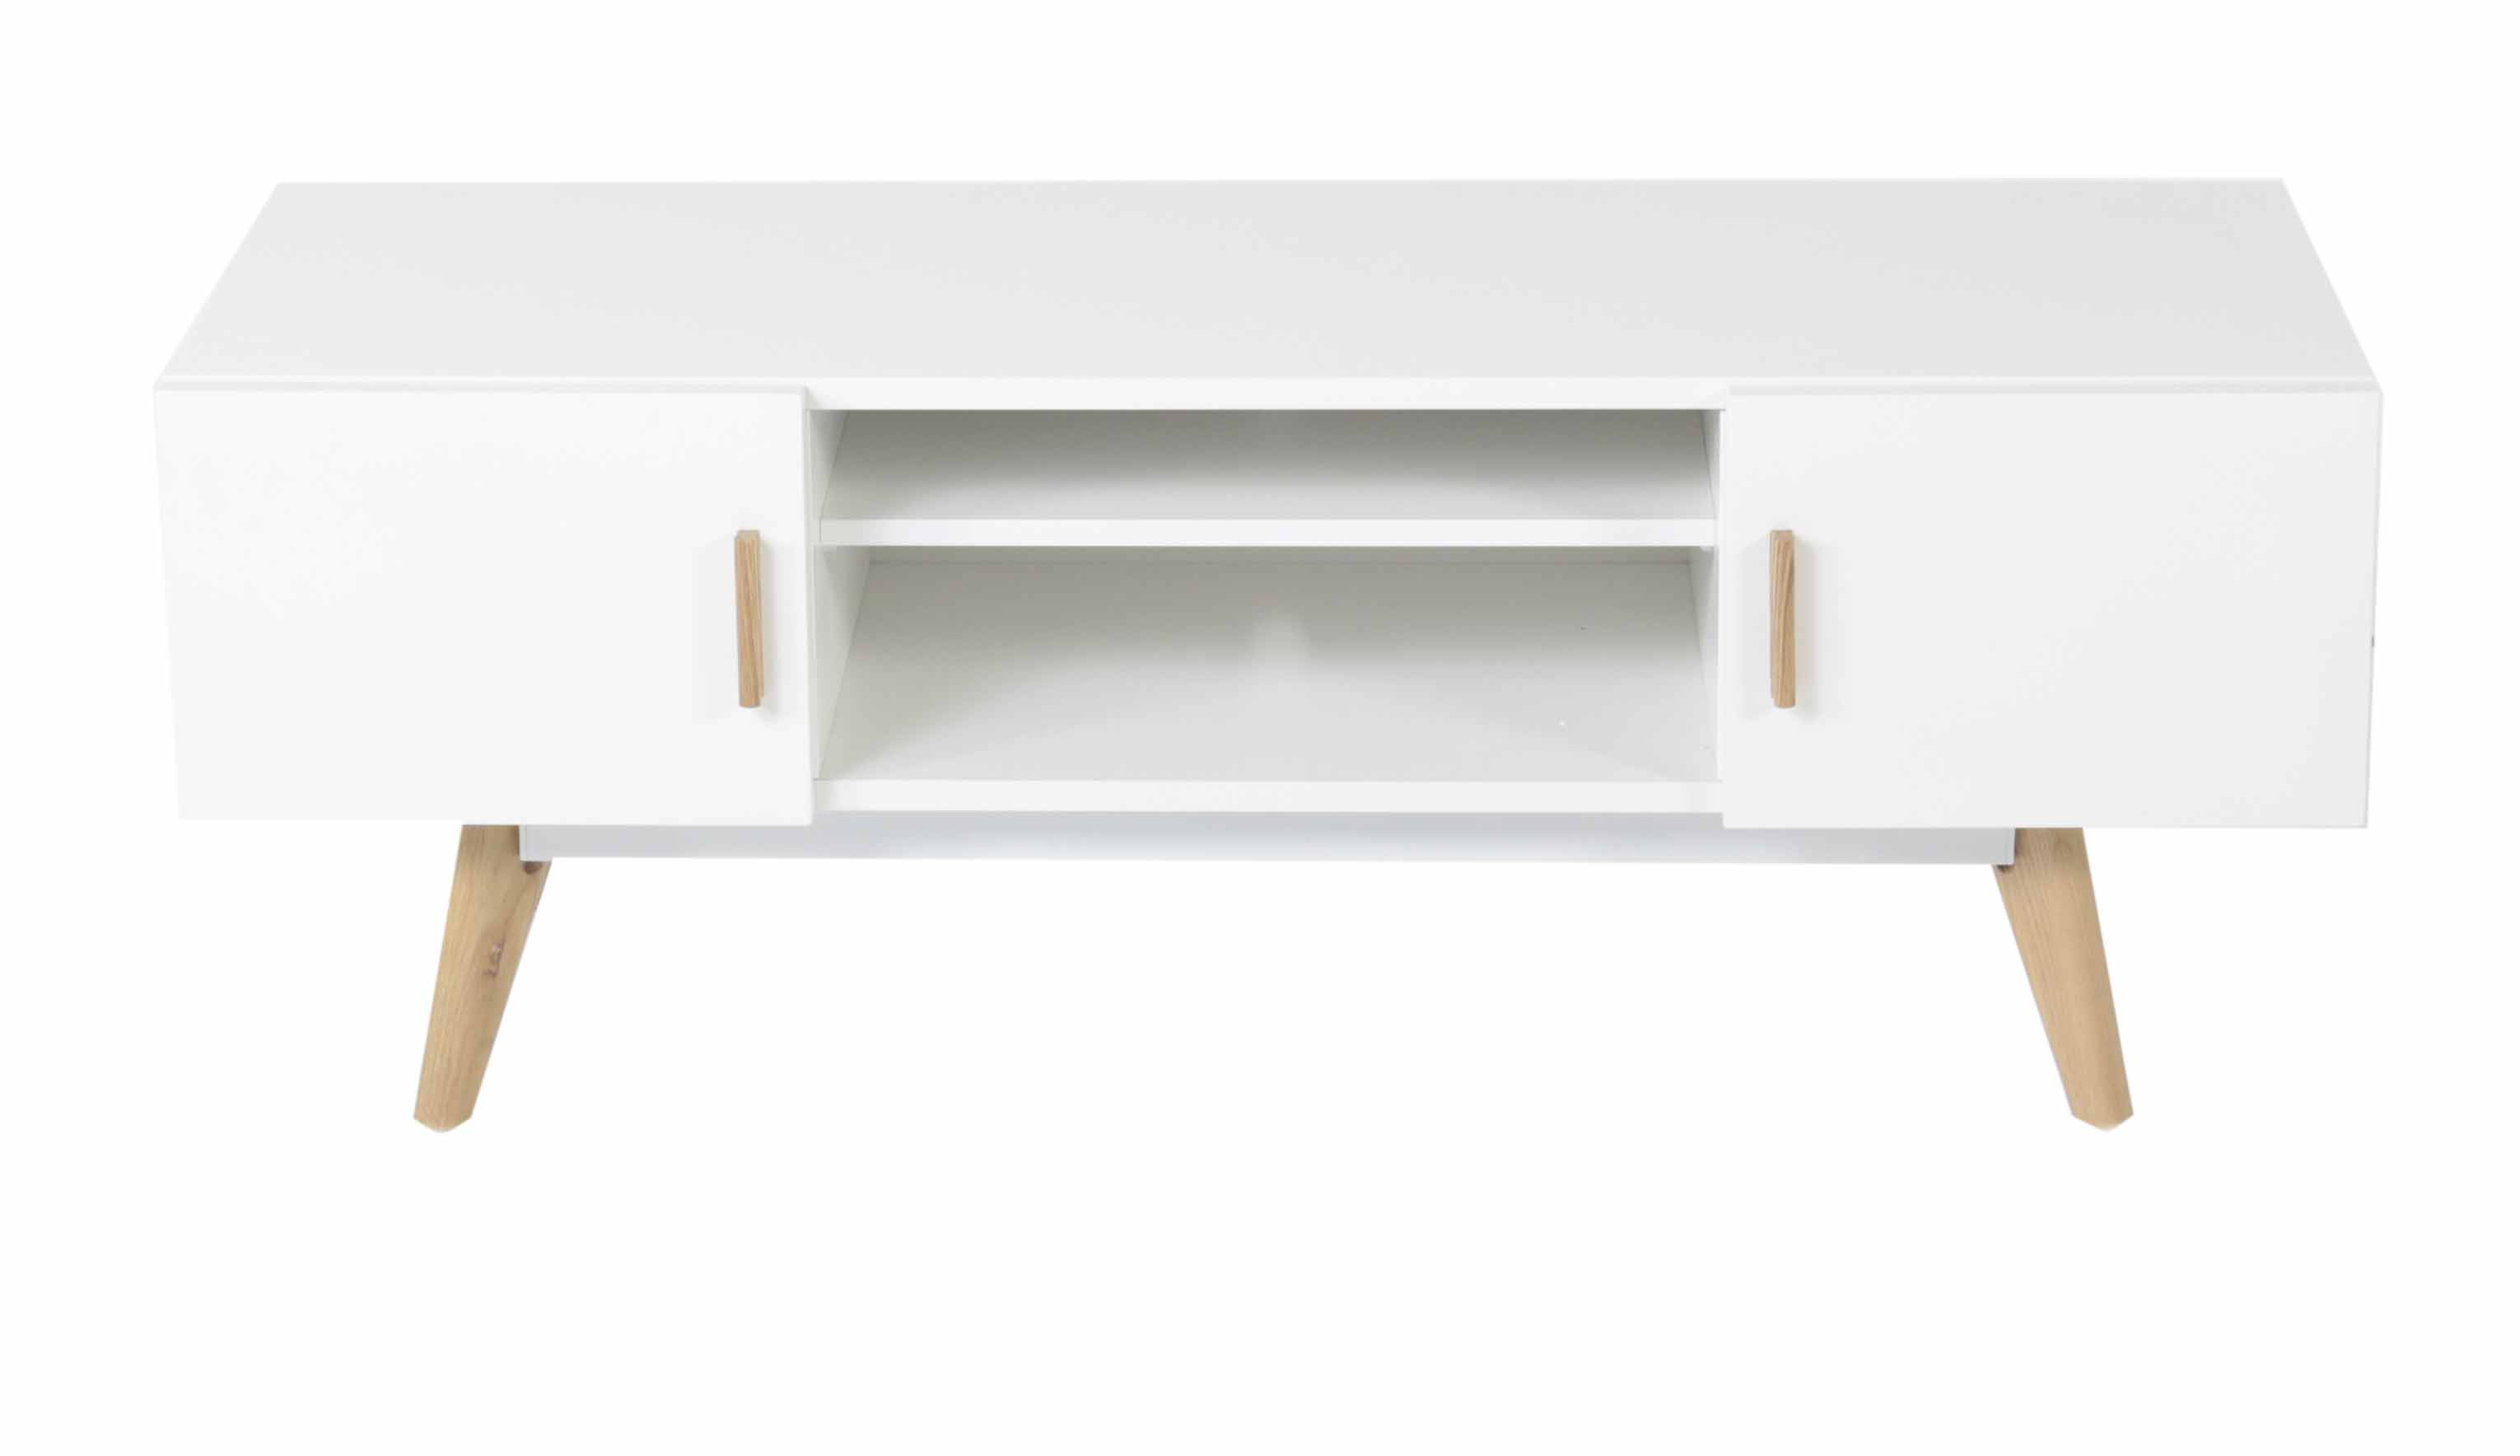 Meuble Tv Scandinave Blanc - Scandinave Meuble Tv Infini Photo[mjhdah]http://www.altahomedeco.fr/13231/meuble-tv-blanc-et-chene-simla.jpg